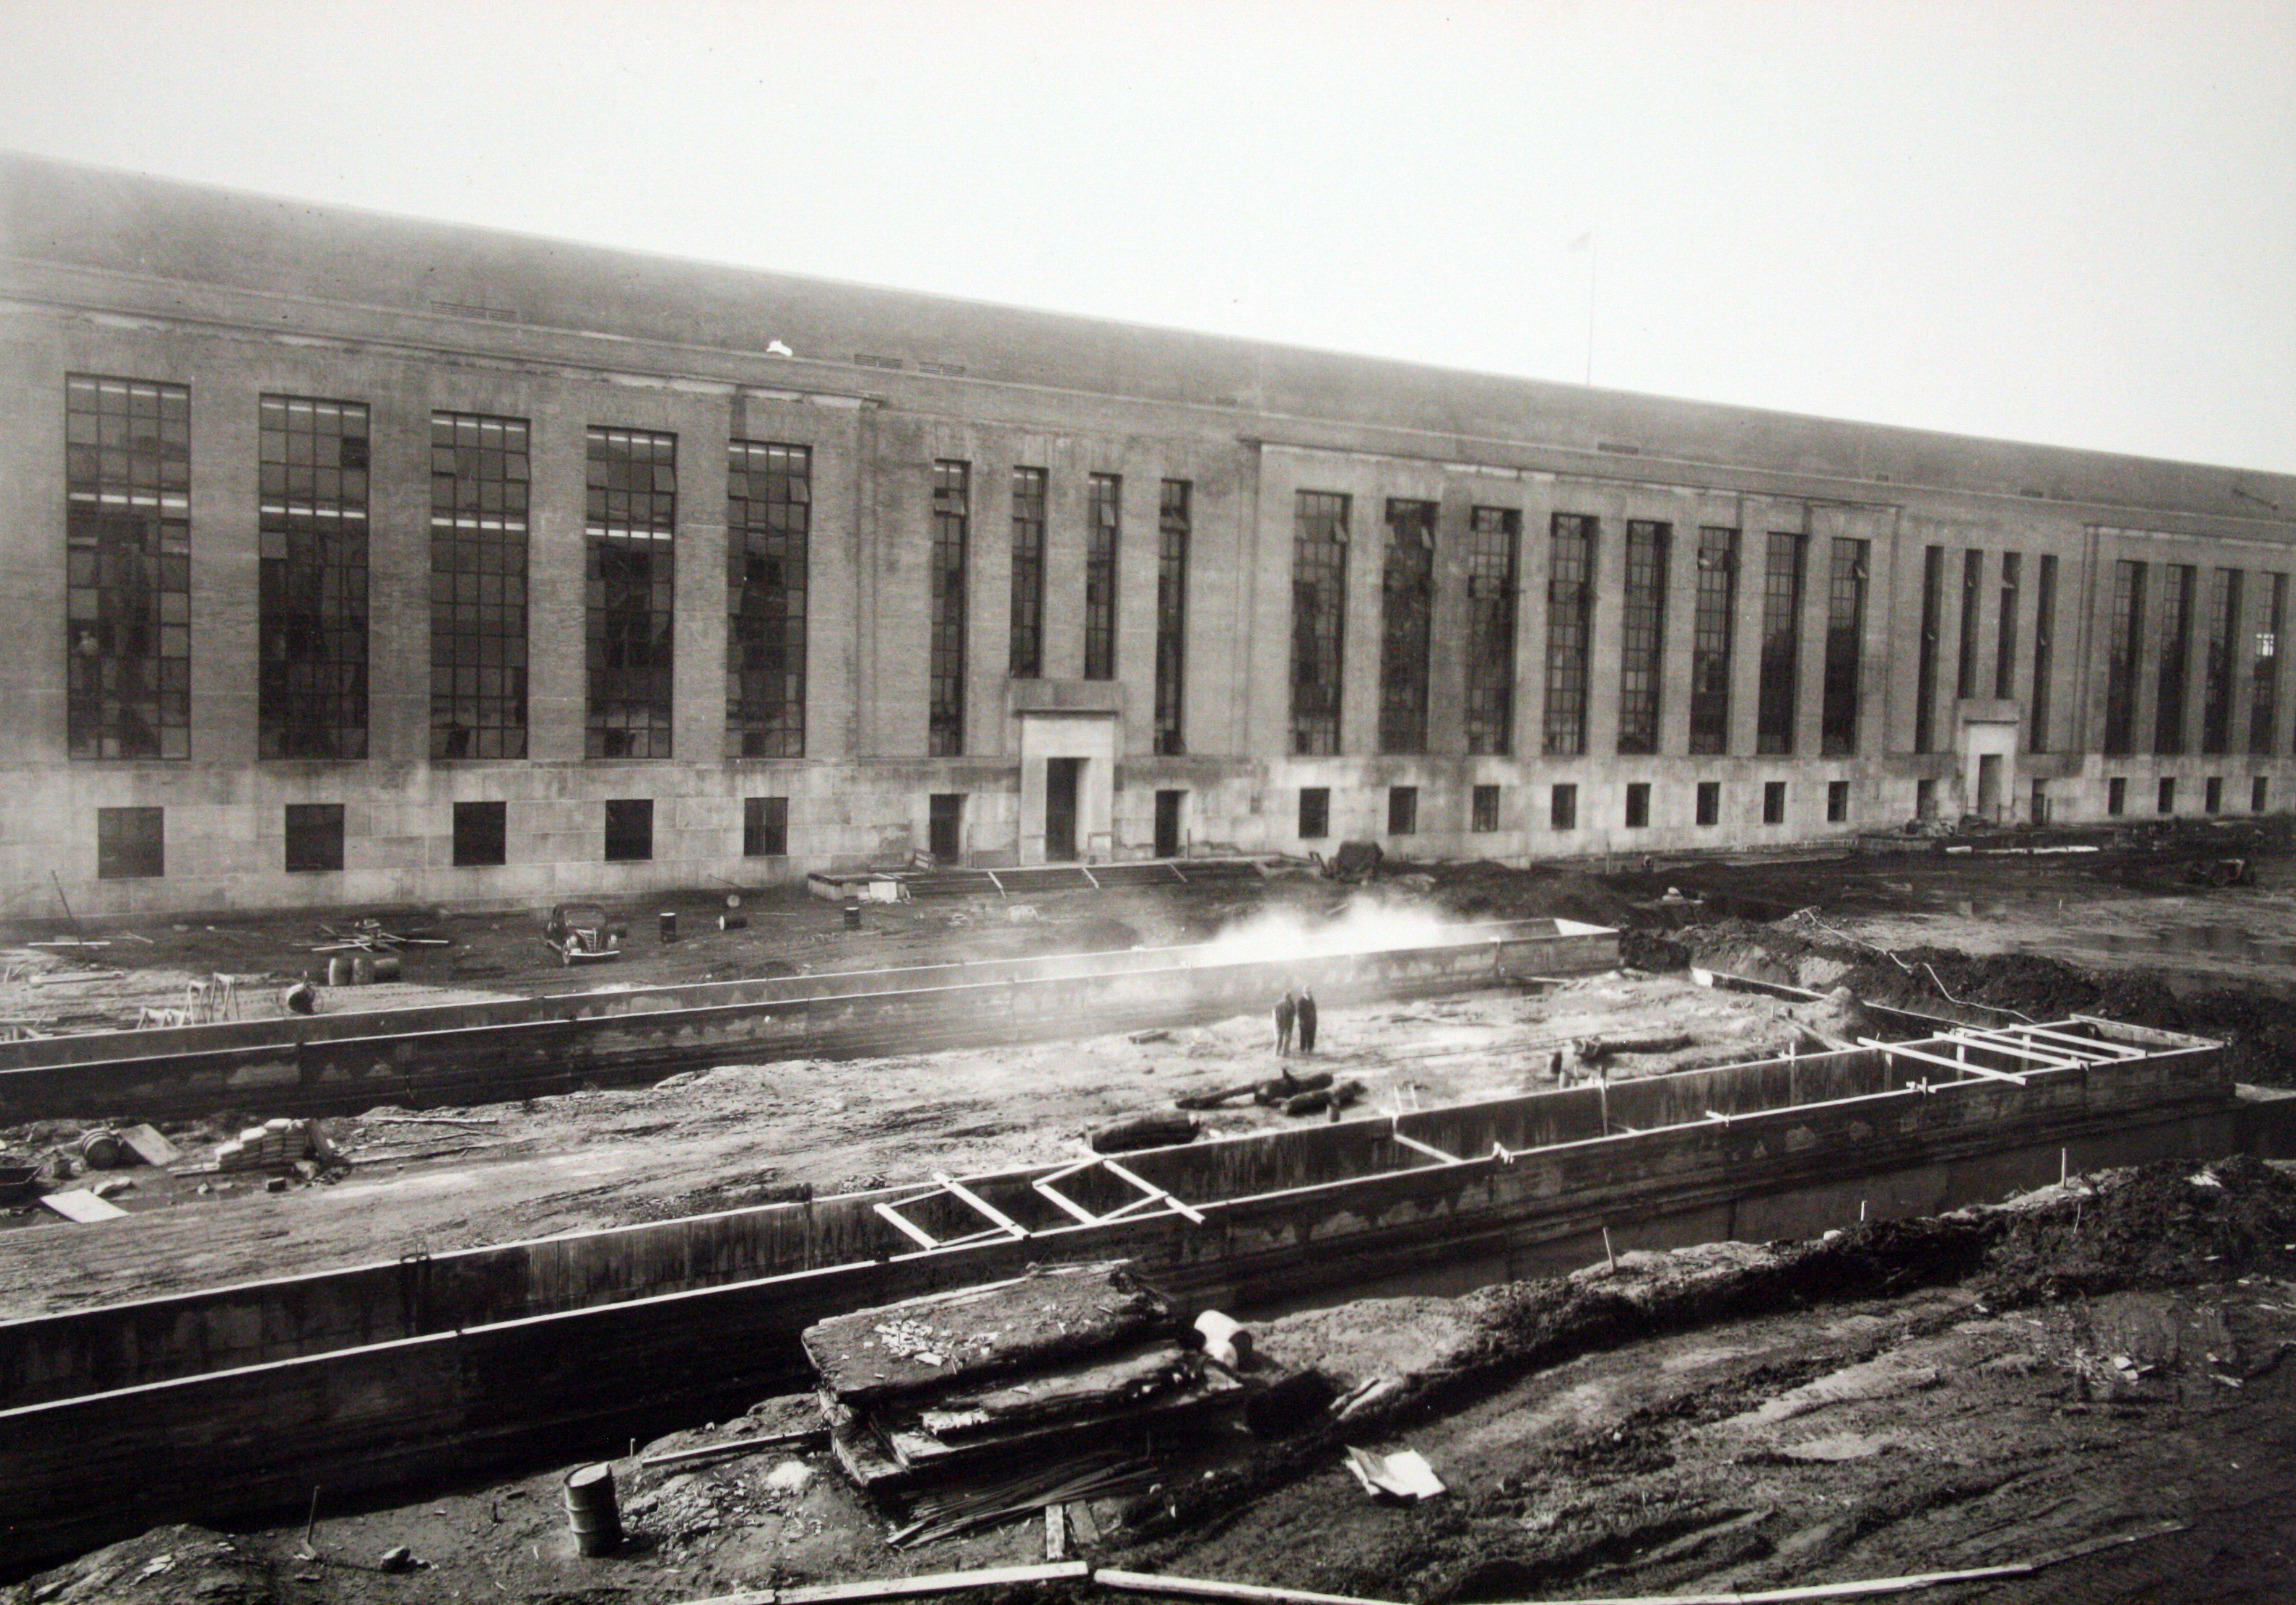 Installation of a garage and surface parking spaces along the C Street facade, c. 1939.